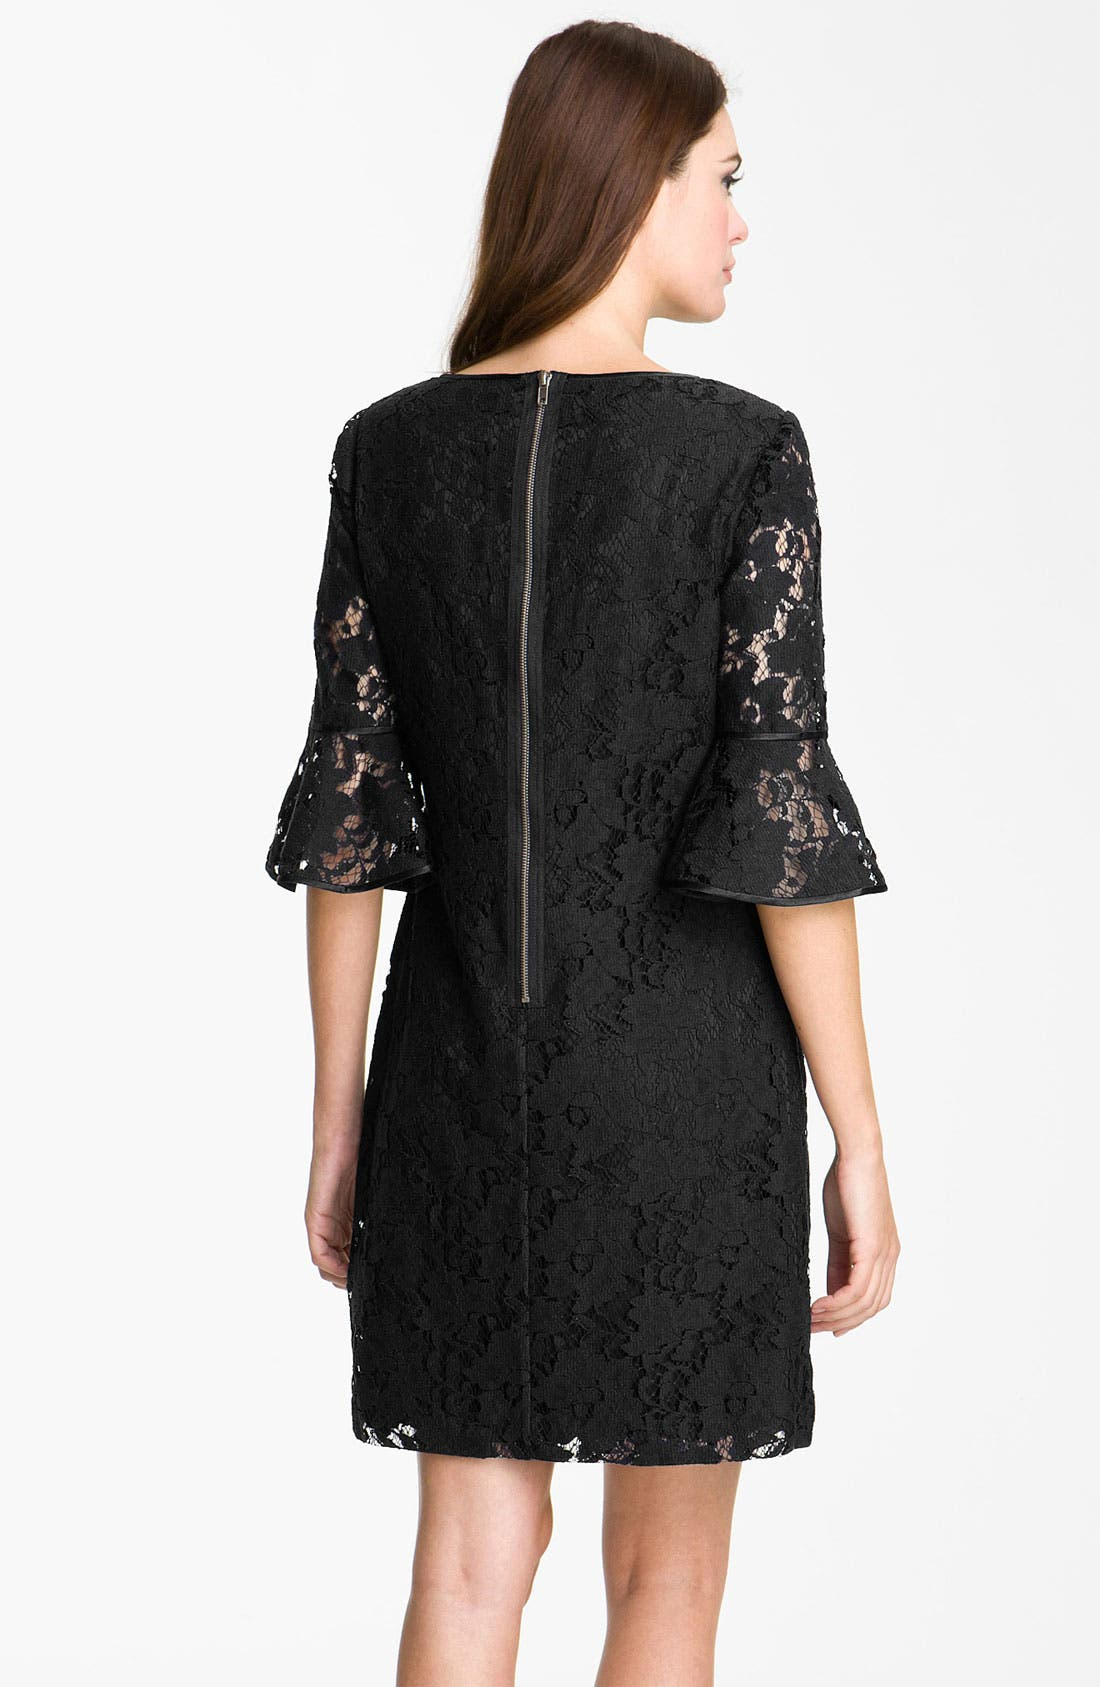 ADRIANNA PAPELL, Ruffle Sleeve Lace Dress, Alternate thumbnail 2, color, 001